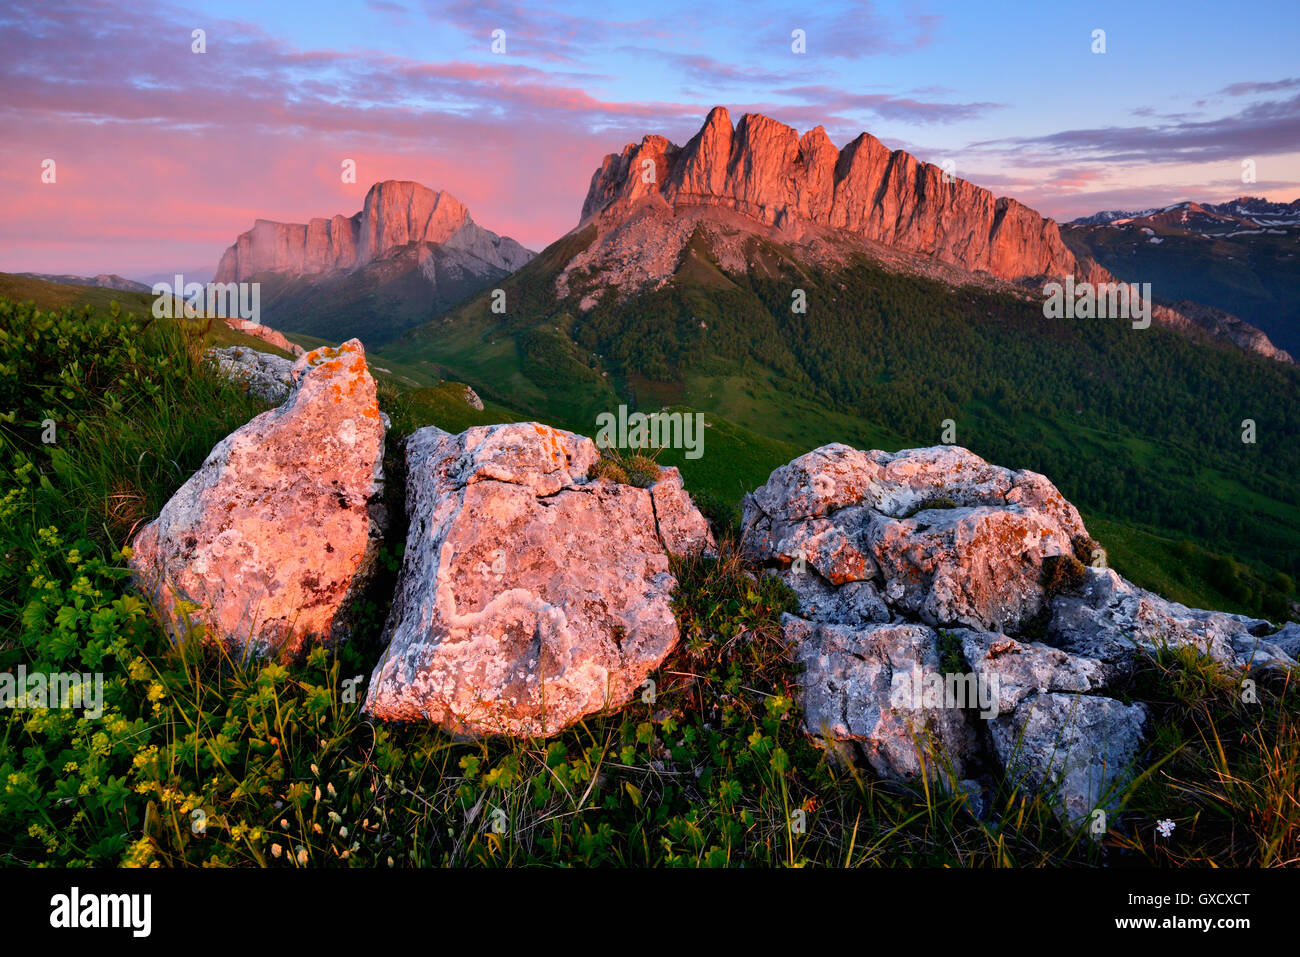 Dusk over Acheshboki mountains in background, Bolshoy Thach Nature Park, Caucasian Mountains, Republic of Adygea, - Stock Image